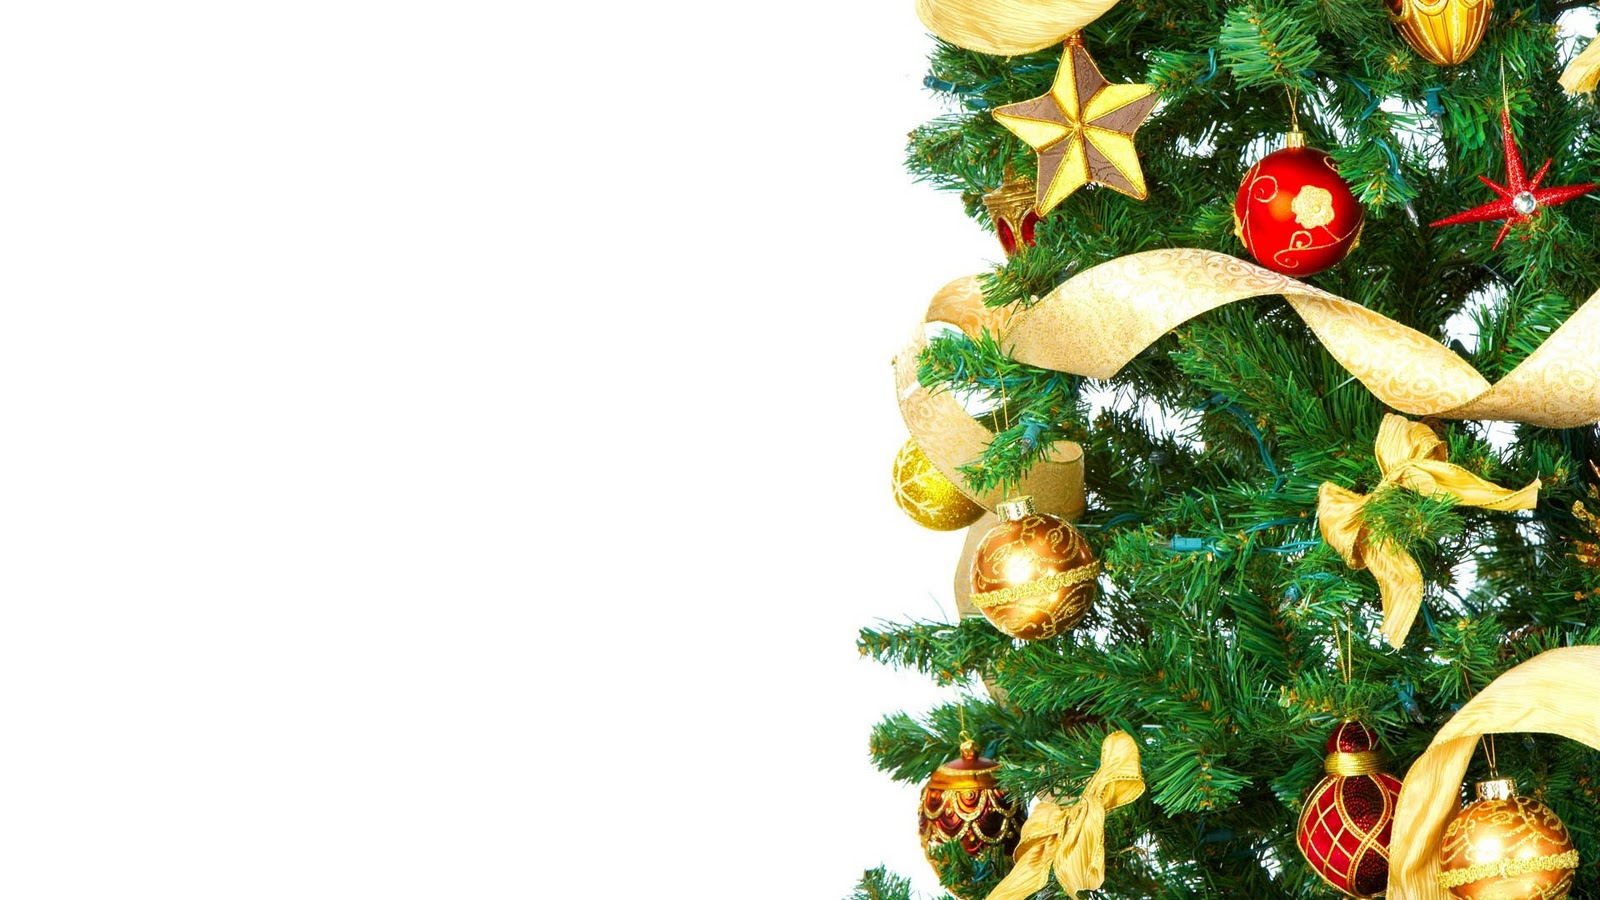 Best Christmas Tree 2012 PPT Backgrounds